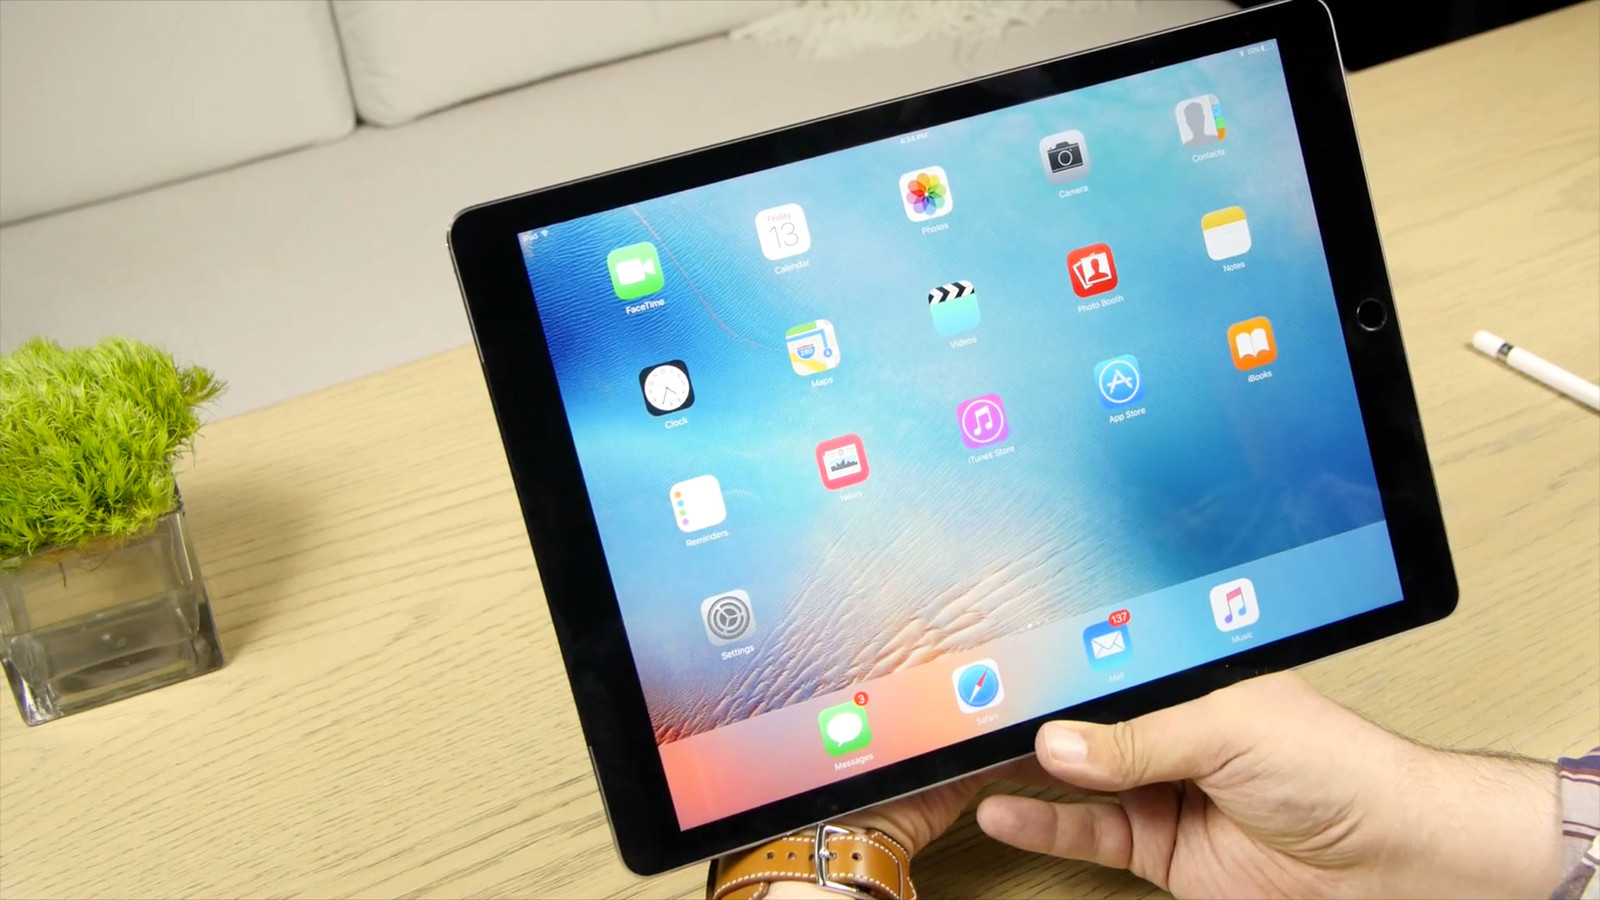 Apple kept the leadership in the tablet market with iPad Pro